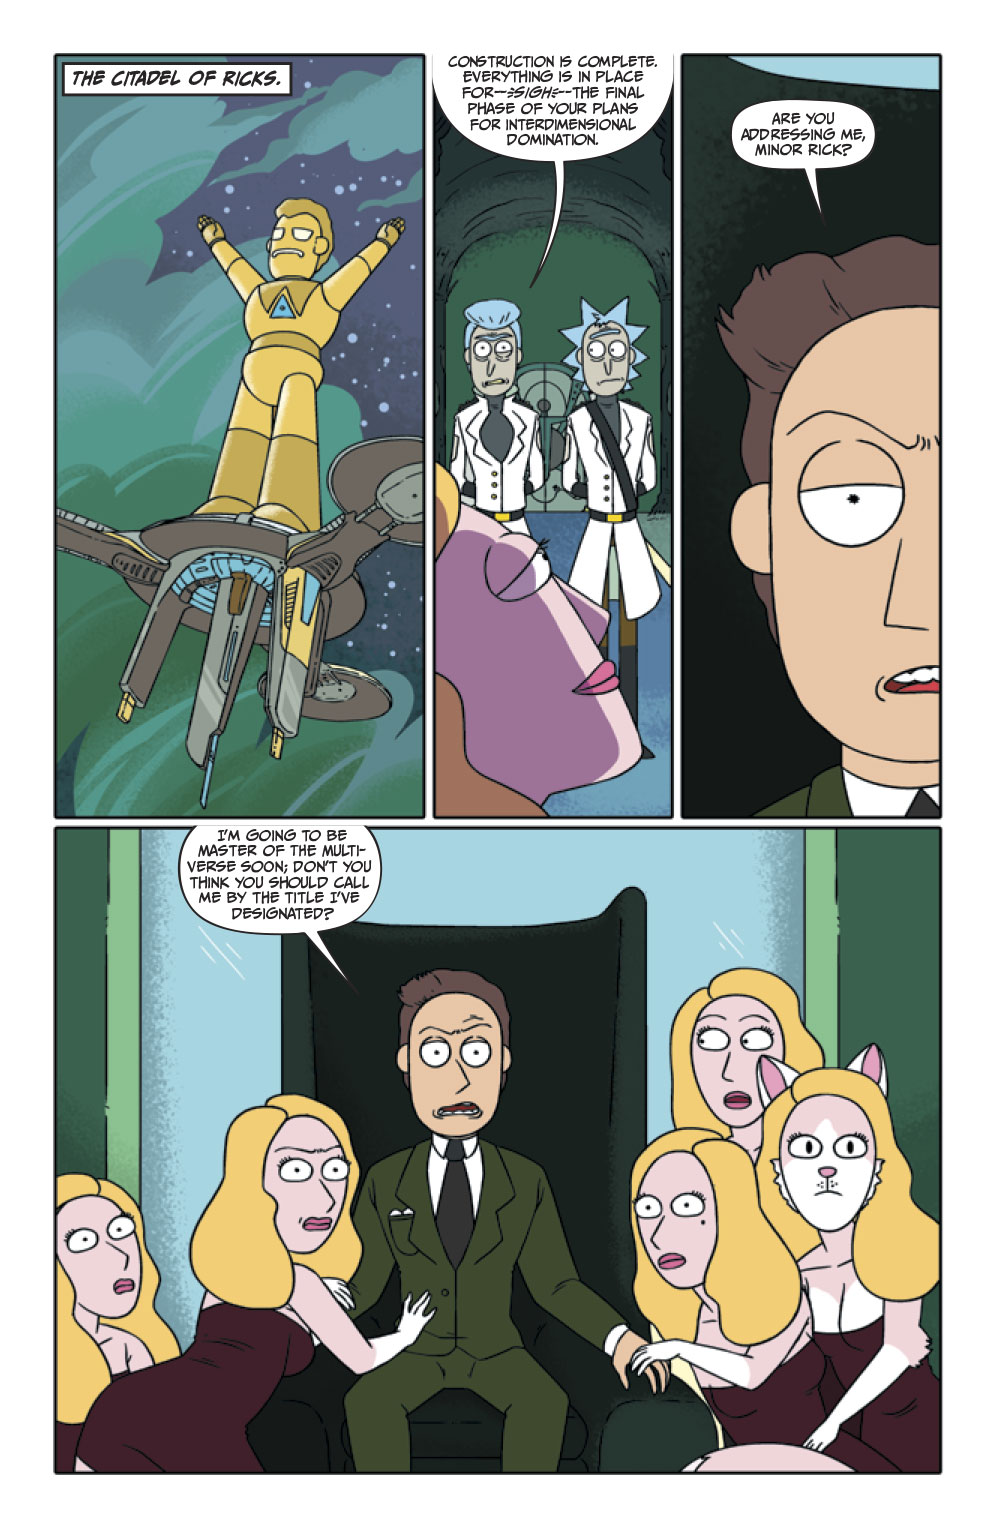 Rick and Morty #23 Review